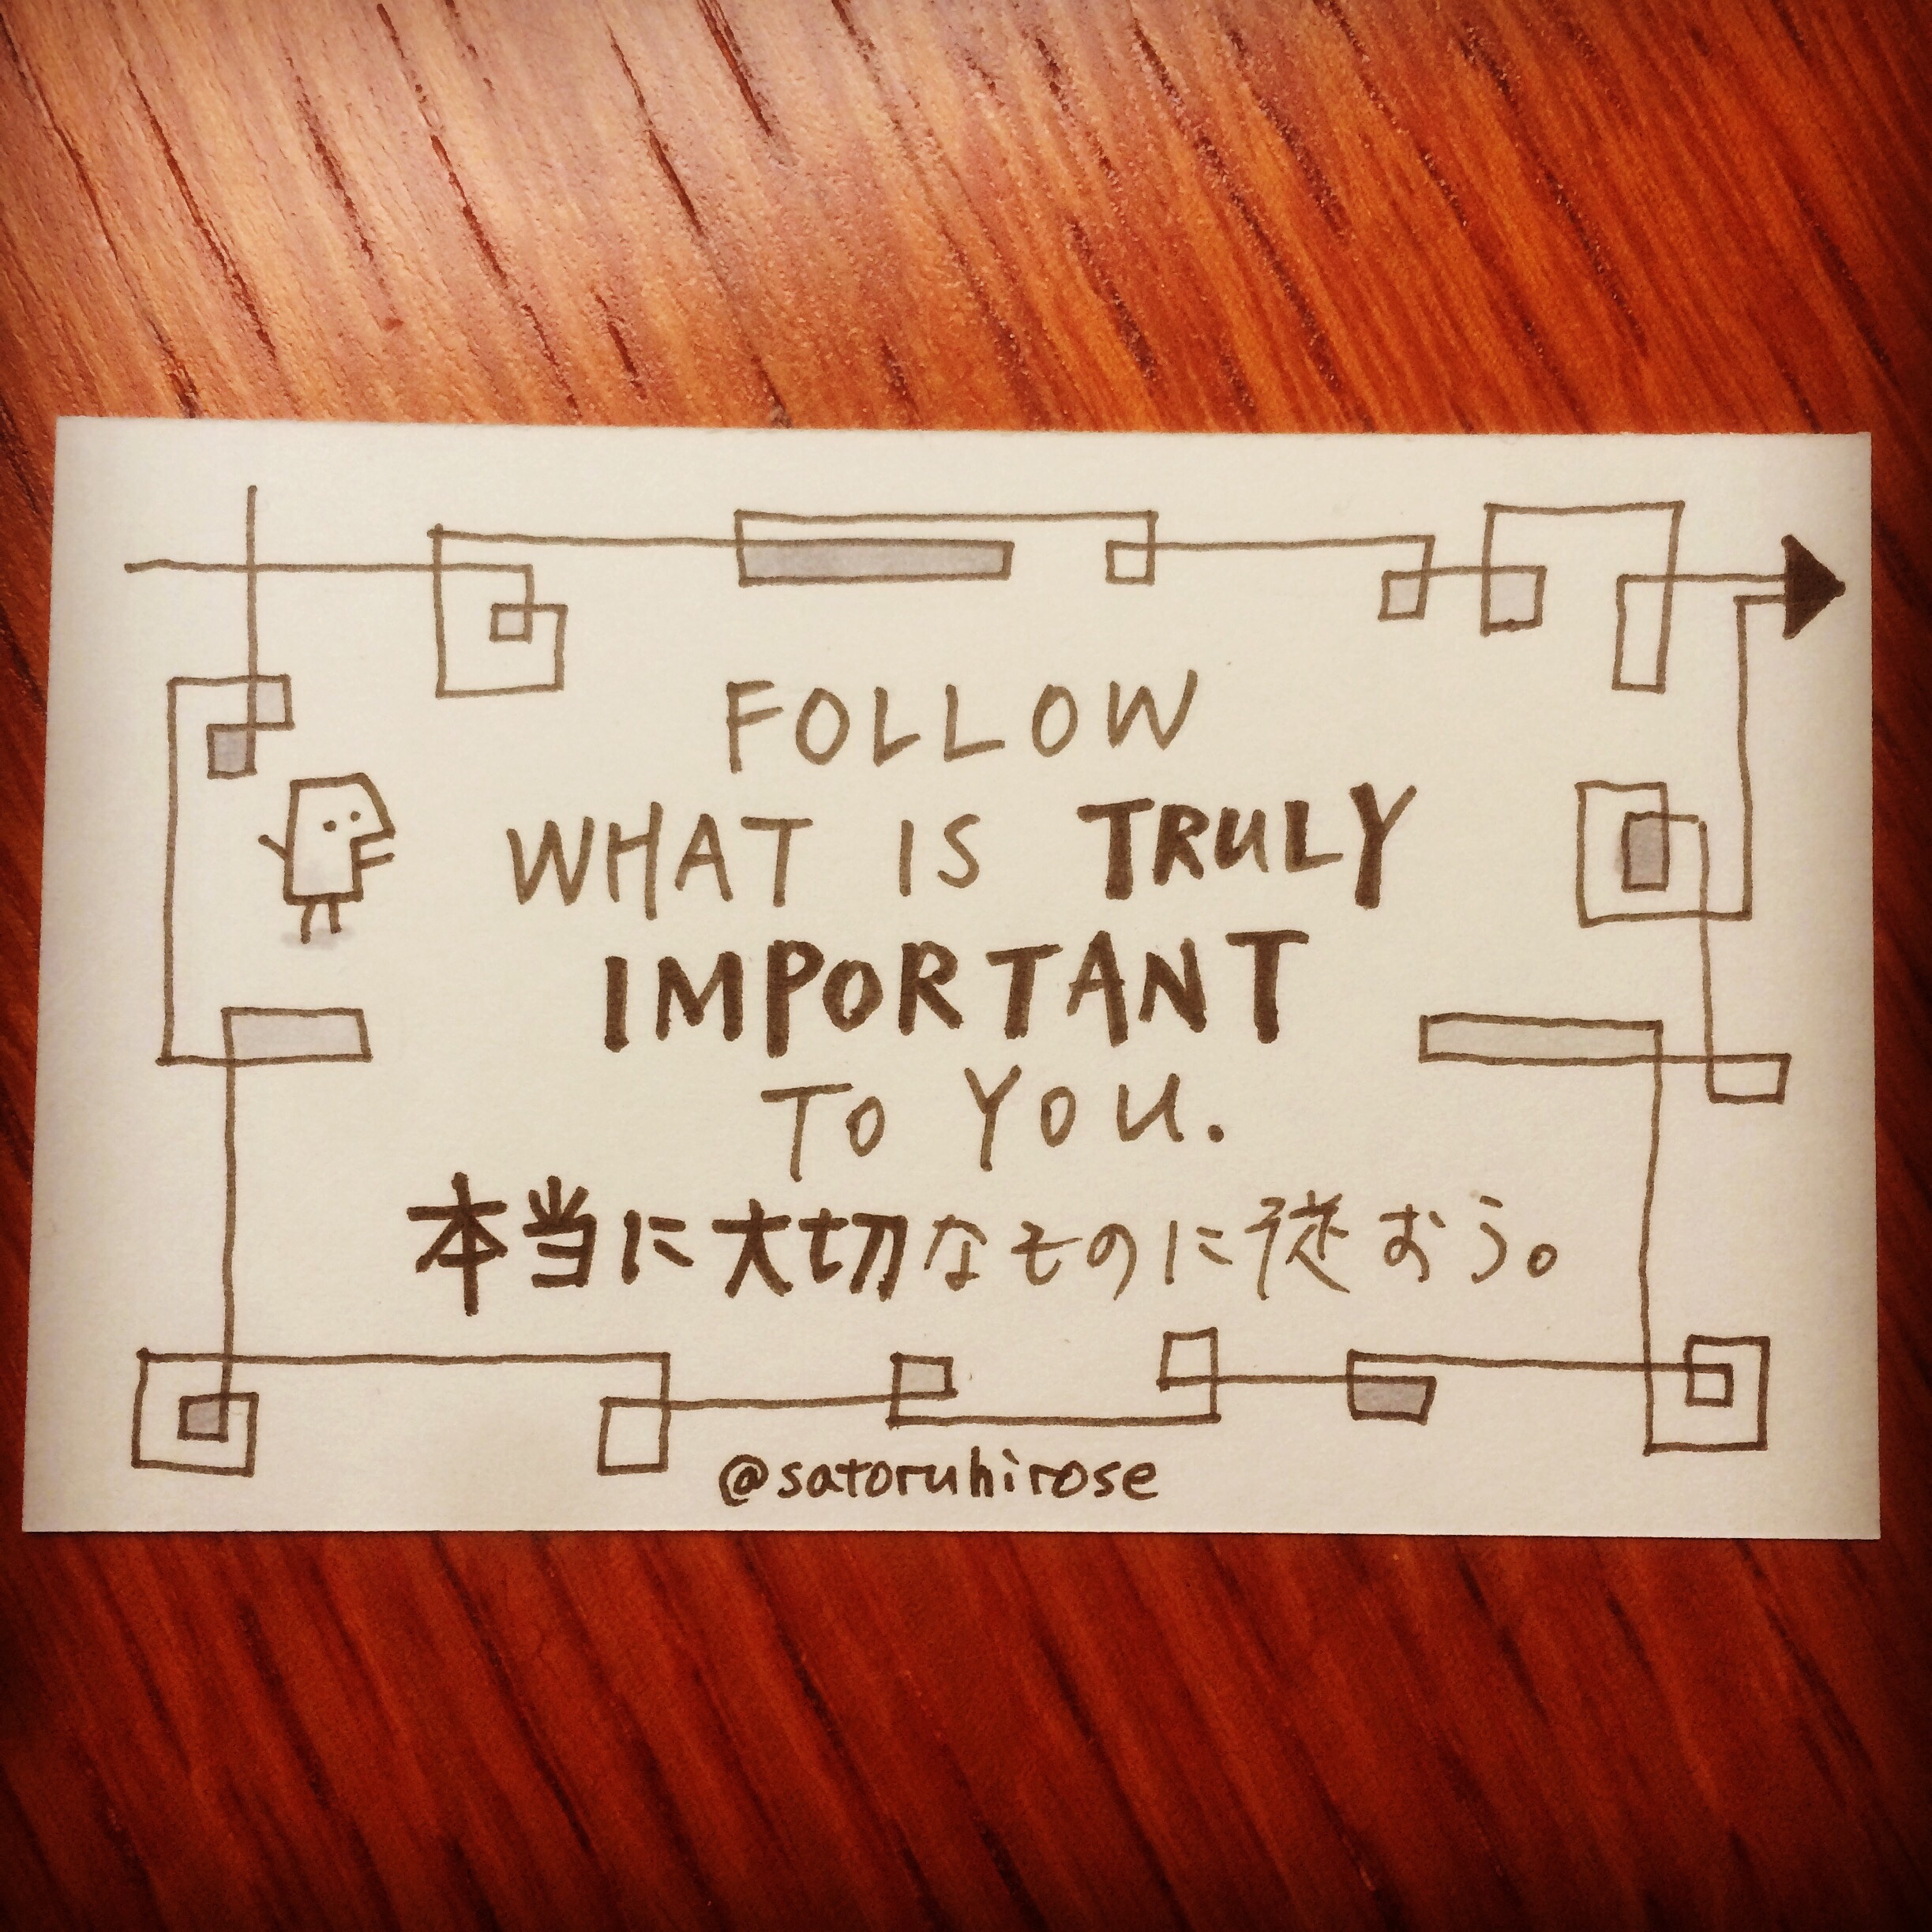 Follow what is truly important to you.